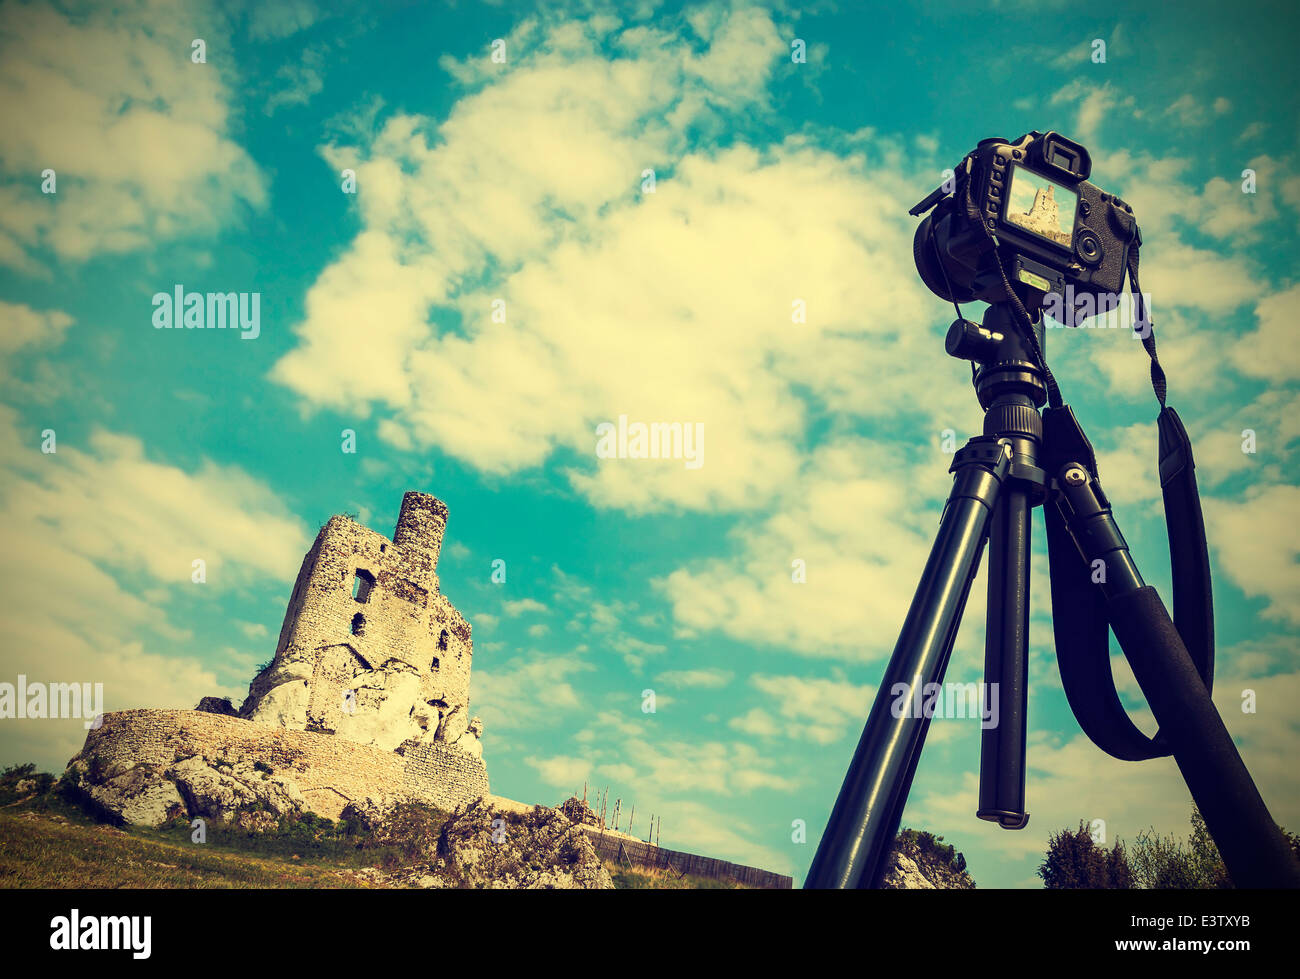 Camera on tripod with summer landscape with ruins, vintage retro style. - Stock Image